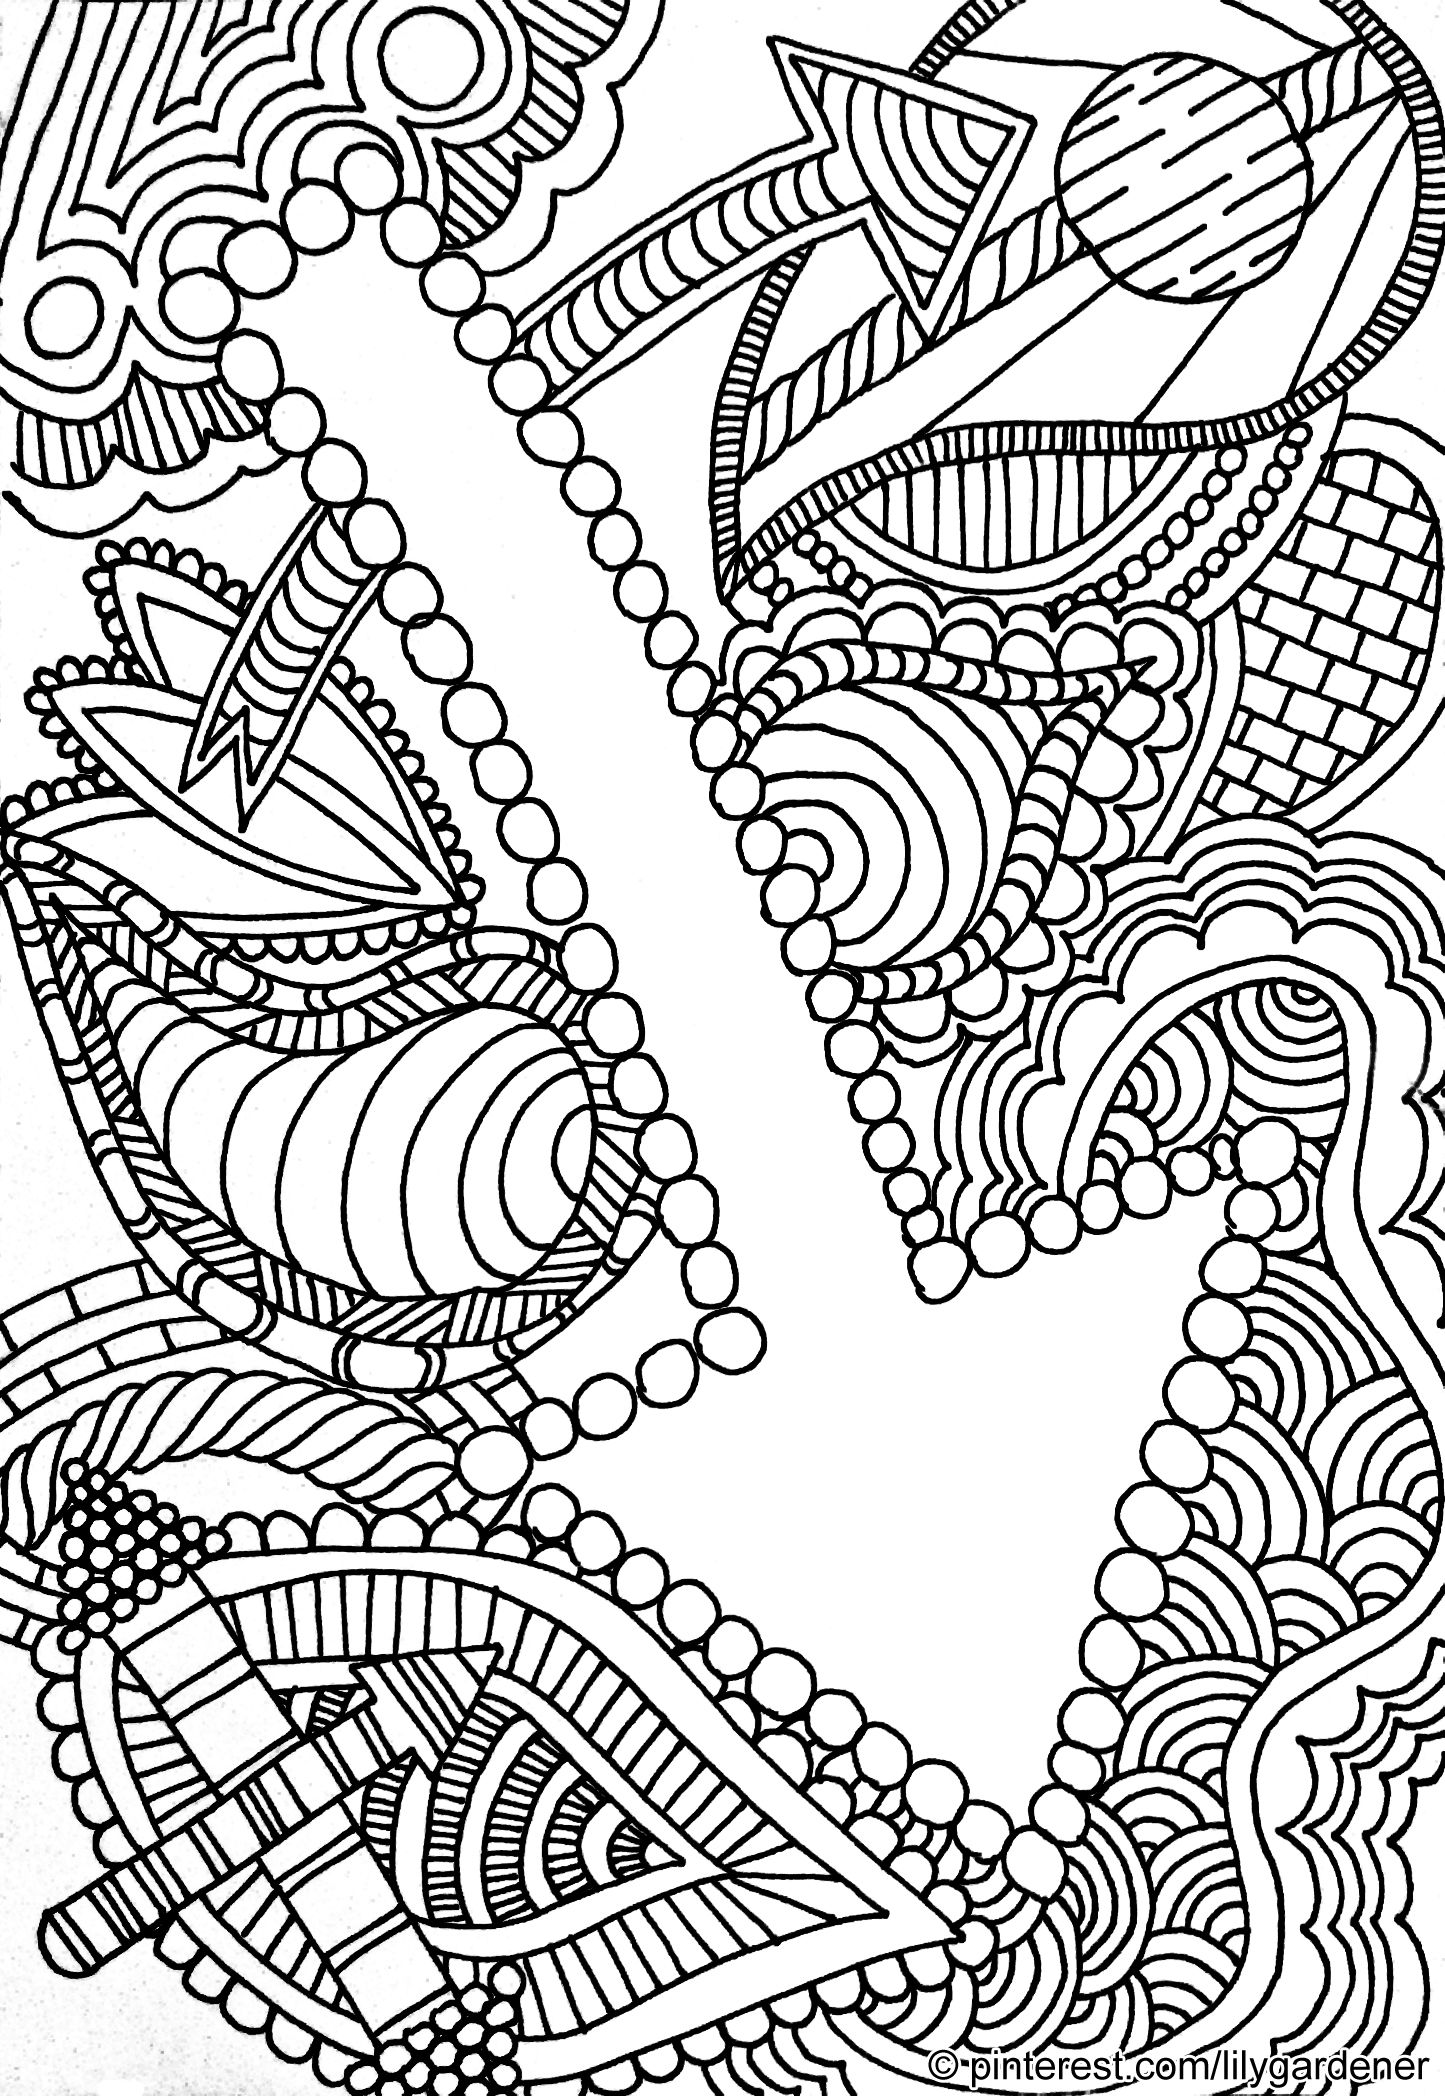 abstract coloring pages for kids abstract coloring pages abstract coloring pages mandala abstract coloring pages kids for